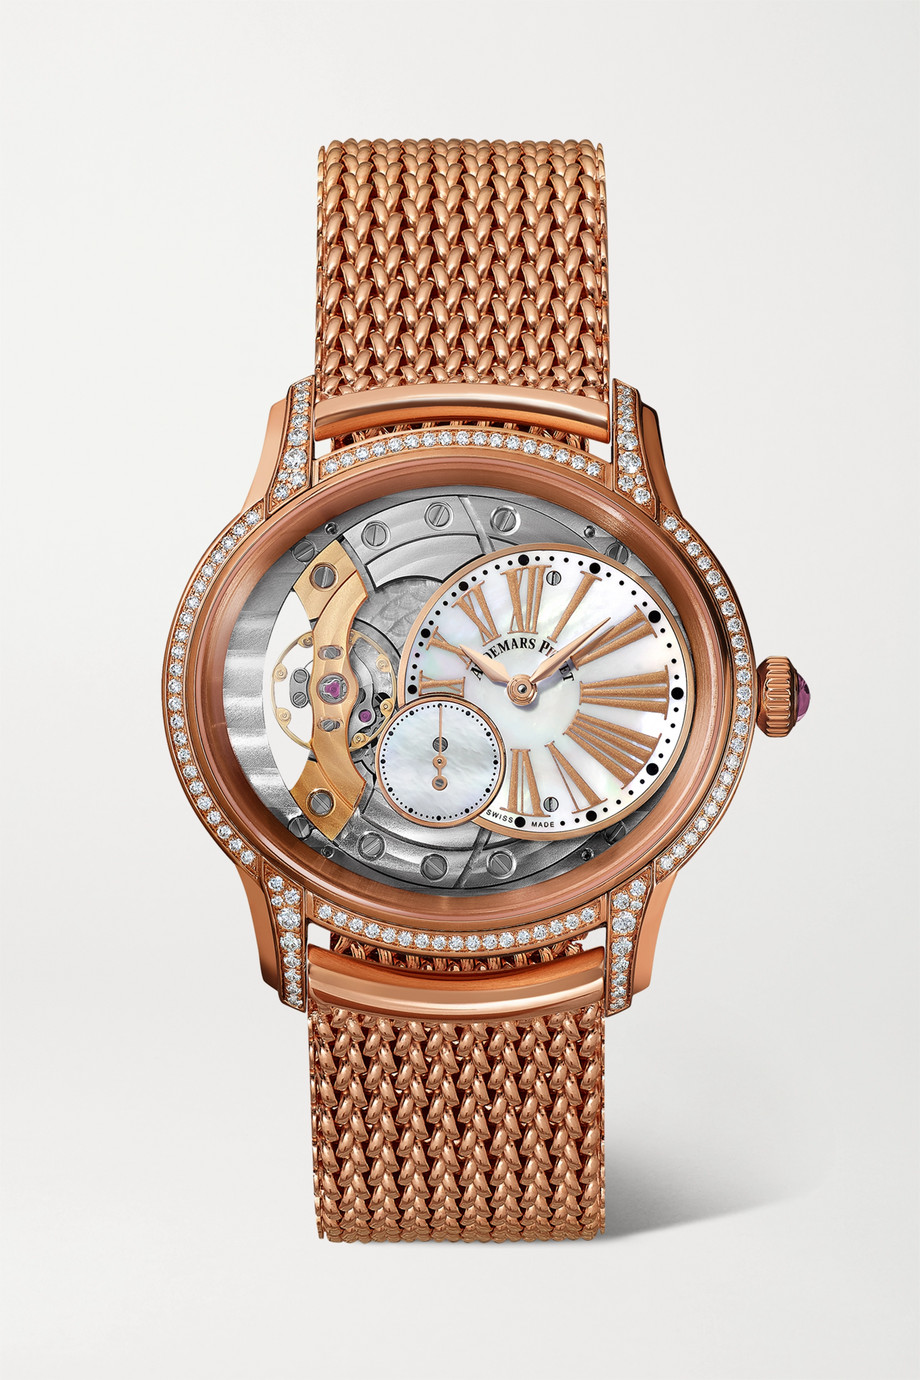 AUDEMARS PIGUET Millenary 39.5mm 18-karat pink gold, diamond and mother-of-pearl watch